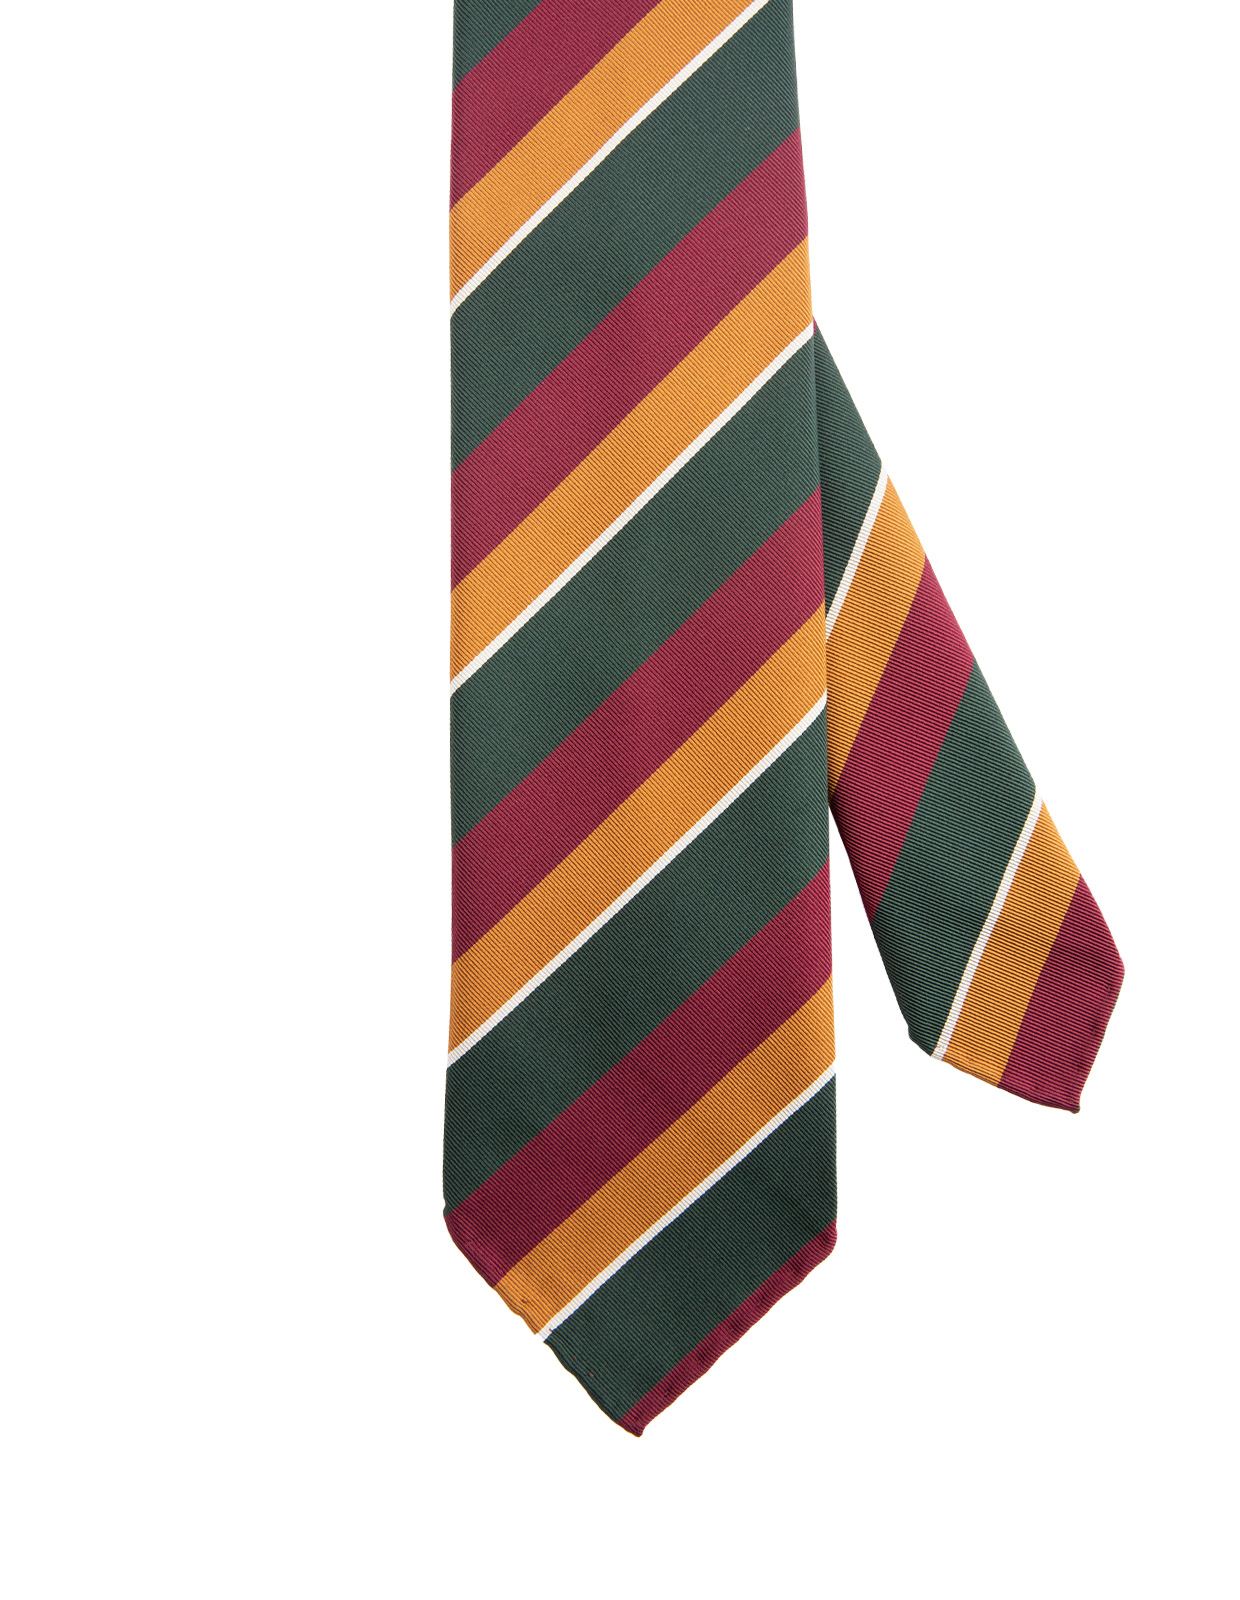 Striped Handmade Untipped Silk Tie Green Rust Wine